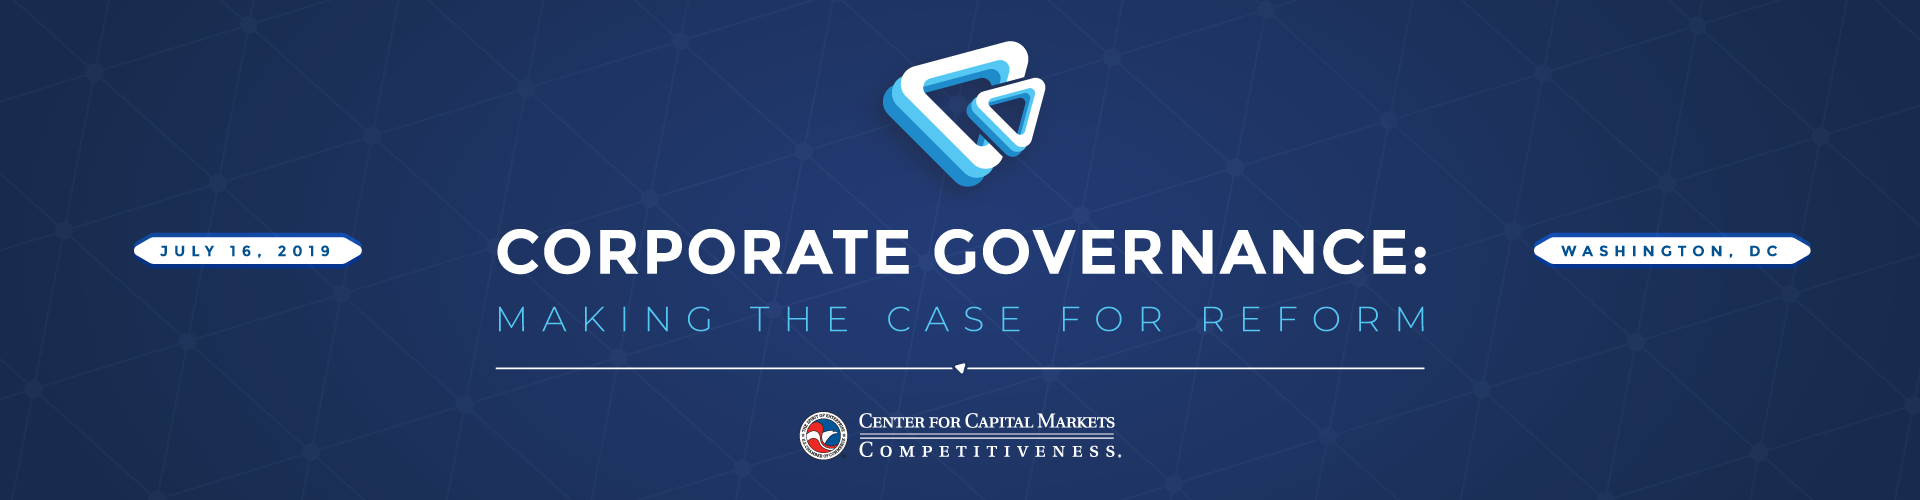 Corporate Governance: Making the Case for Reform